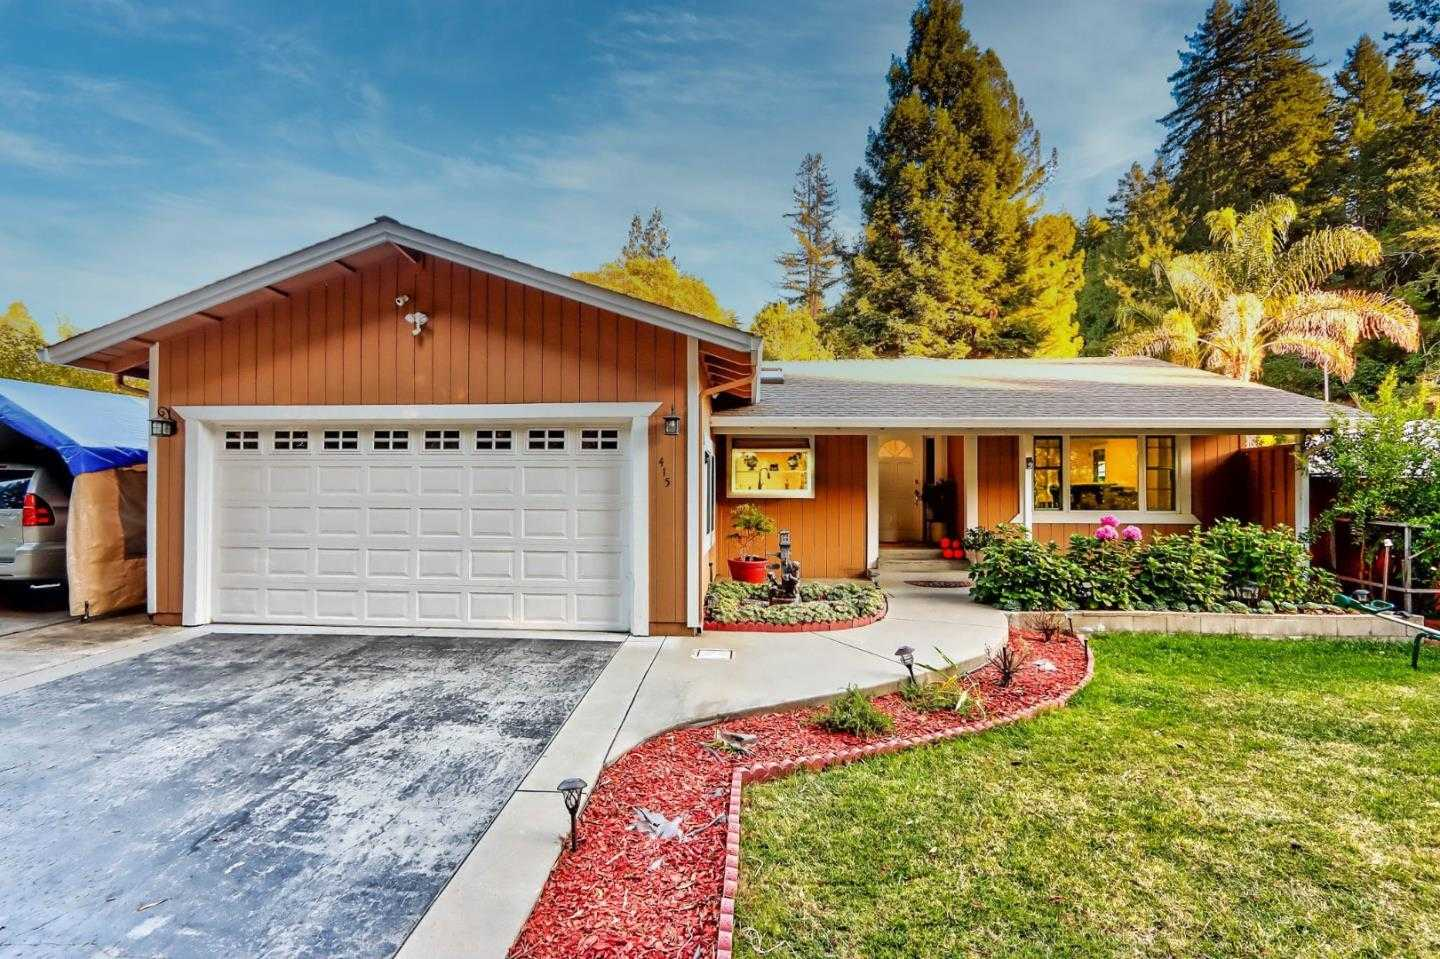 $995,000 - 3Br/2Ba -  for Sale in Scotts Valley